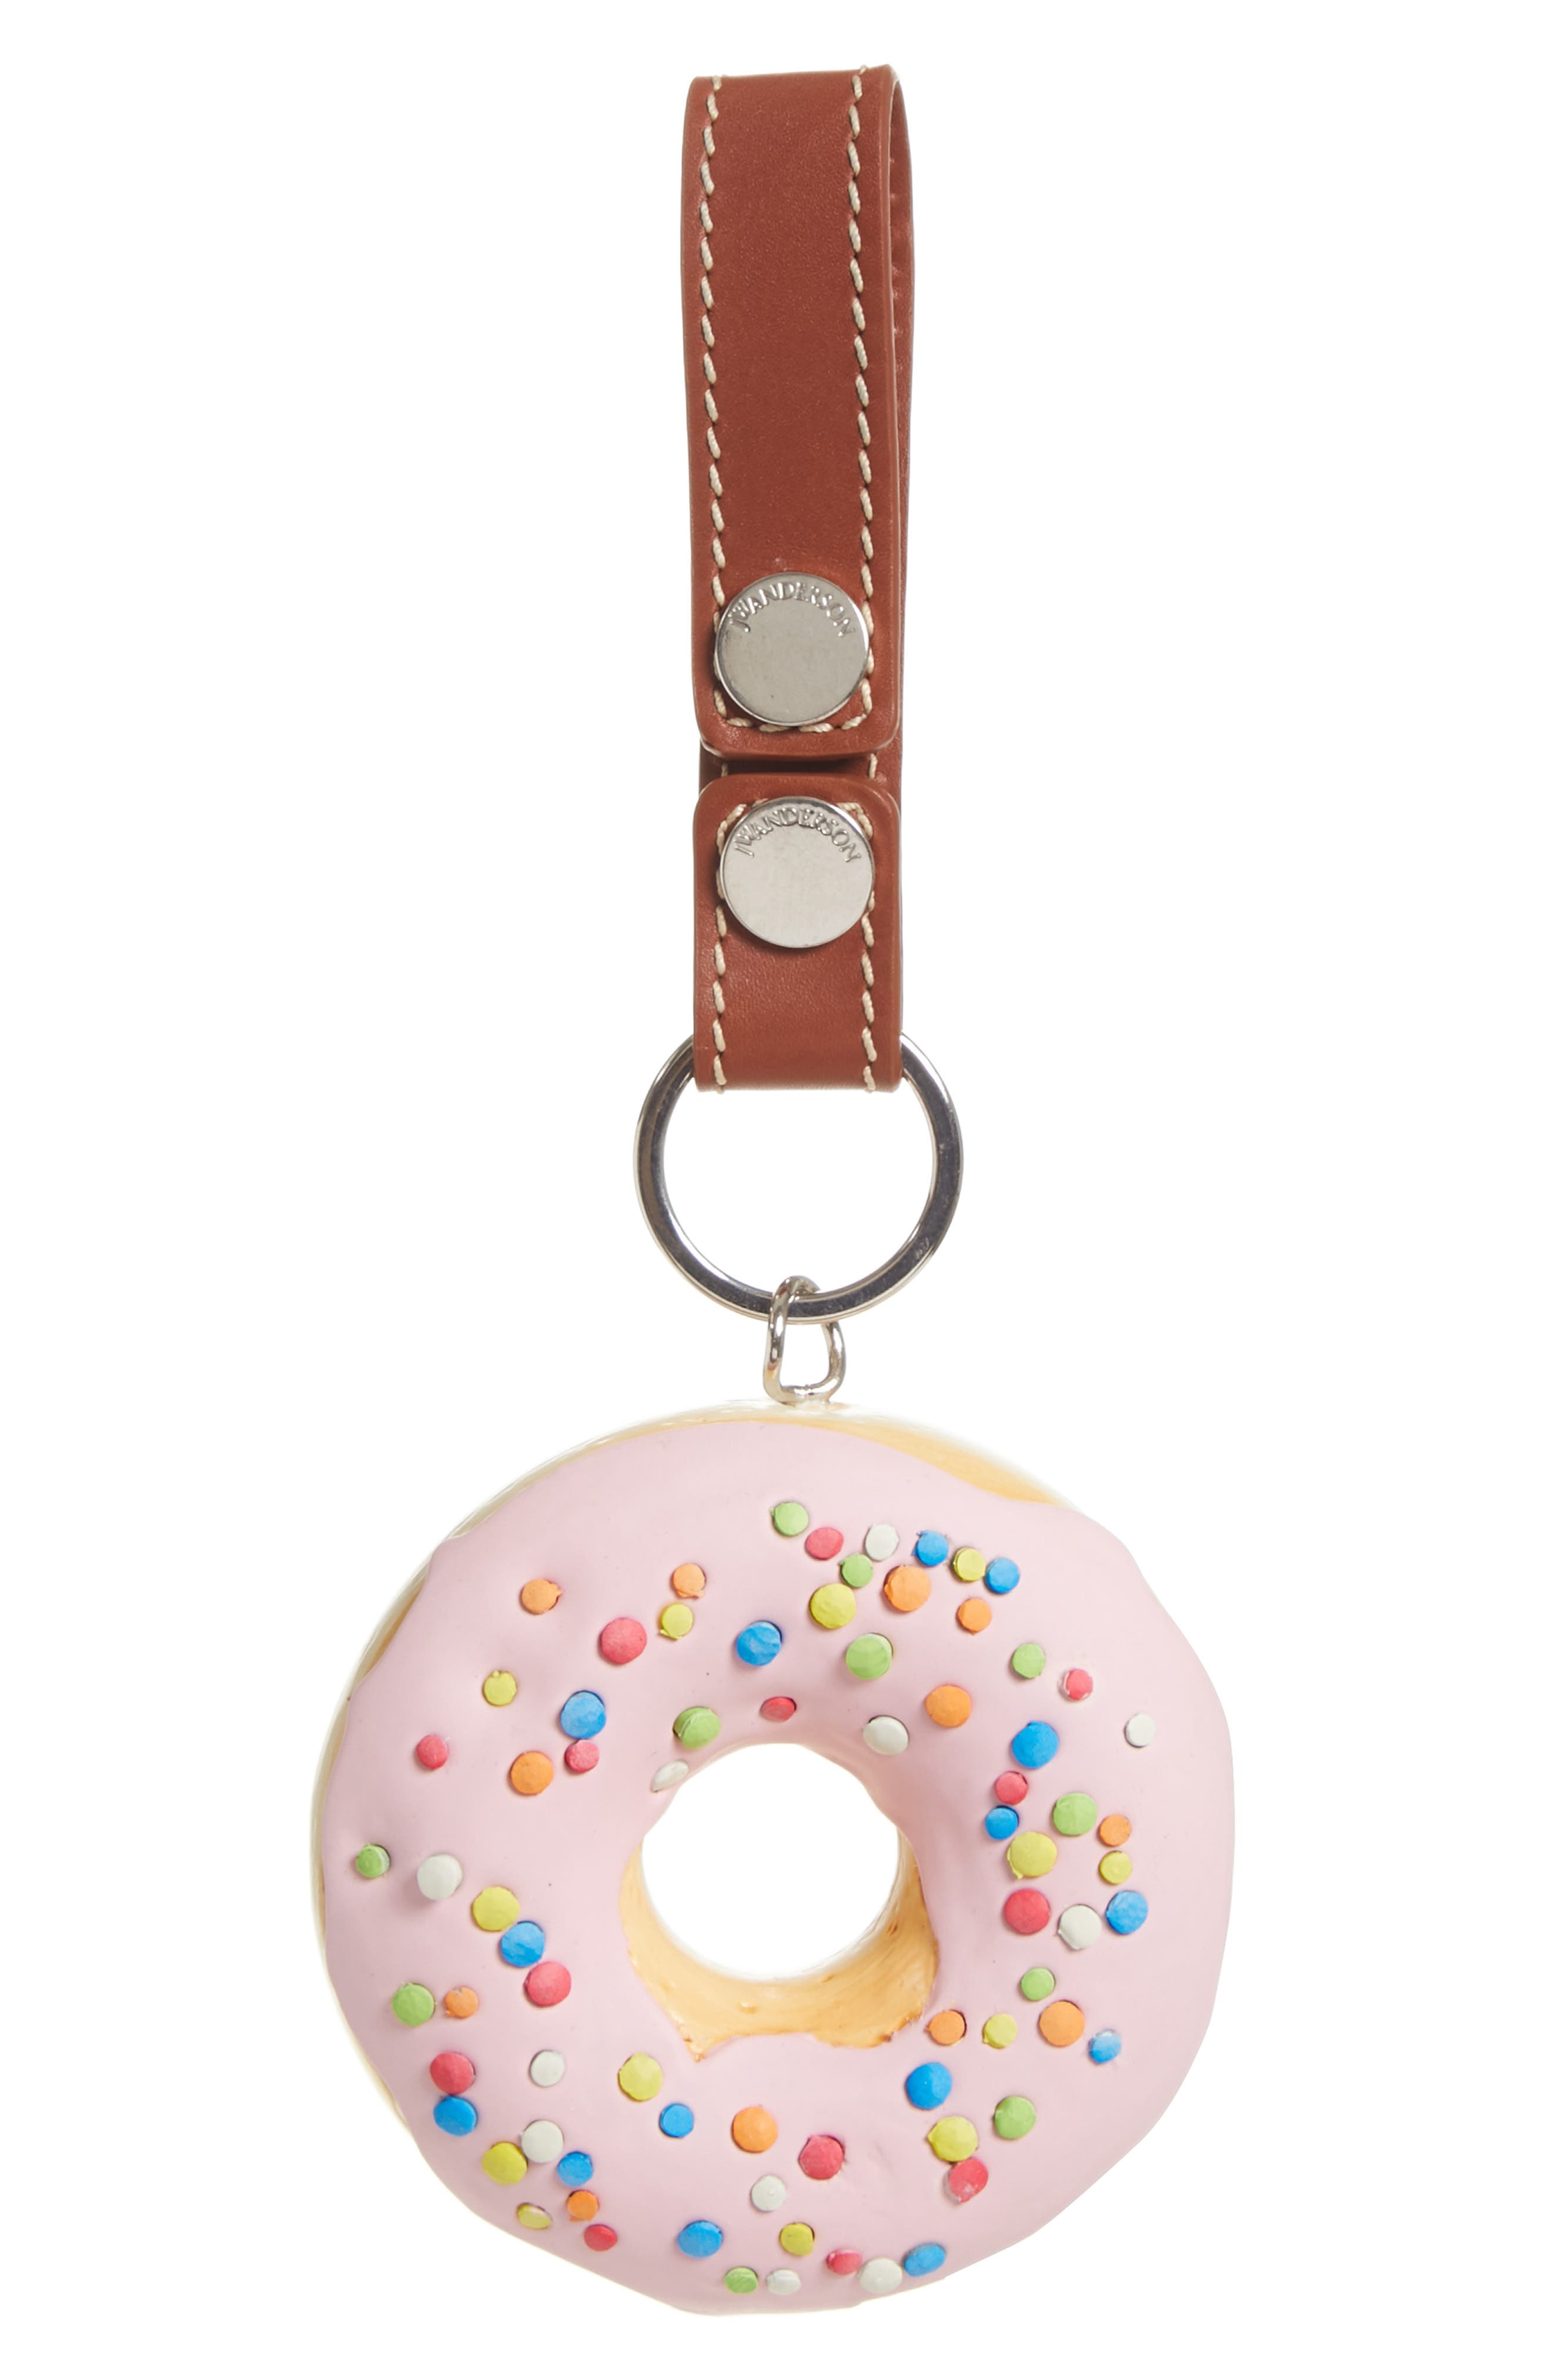 Doughnut Bag Charm,                             Main thumbnail 1, color,                             650